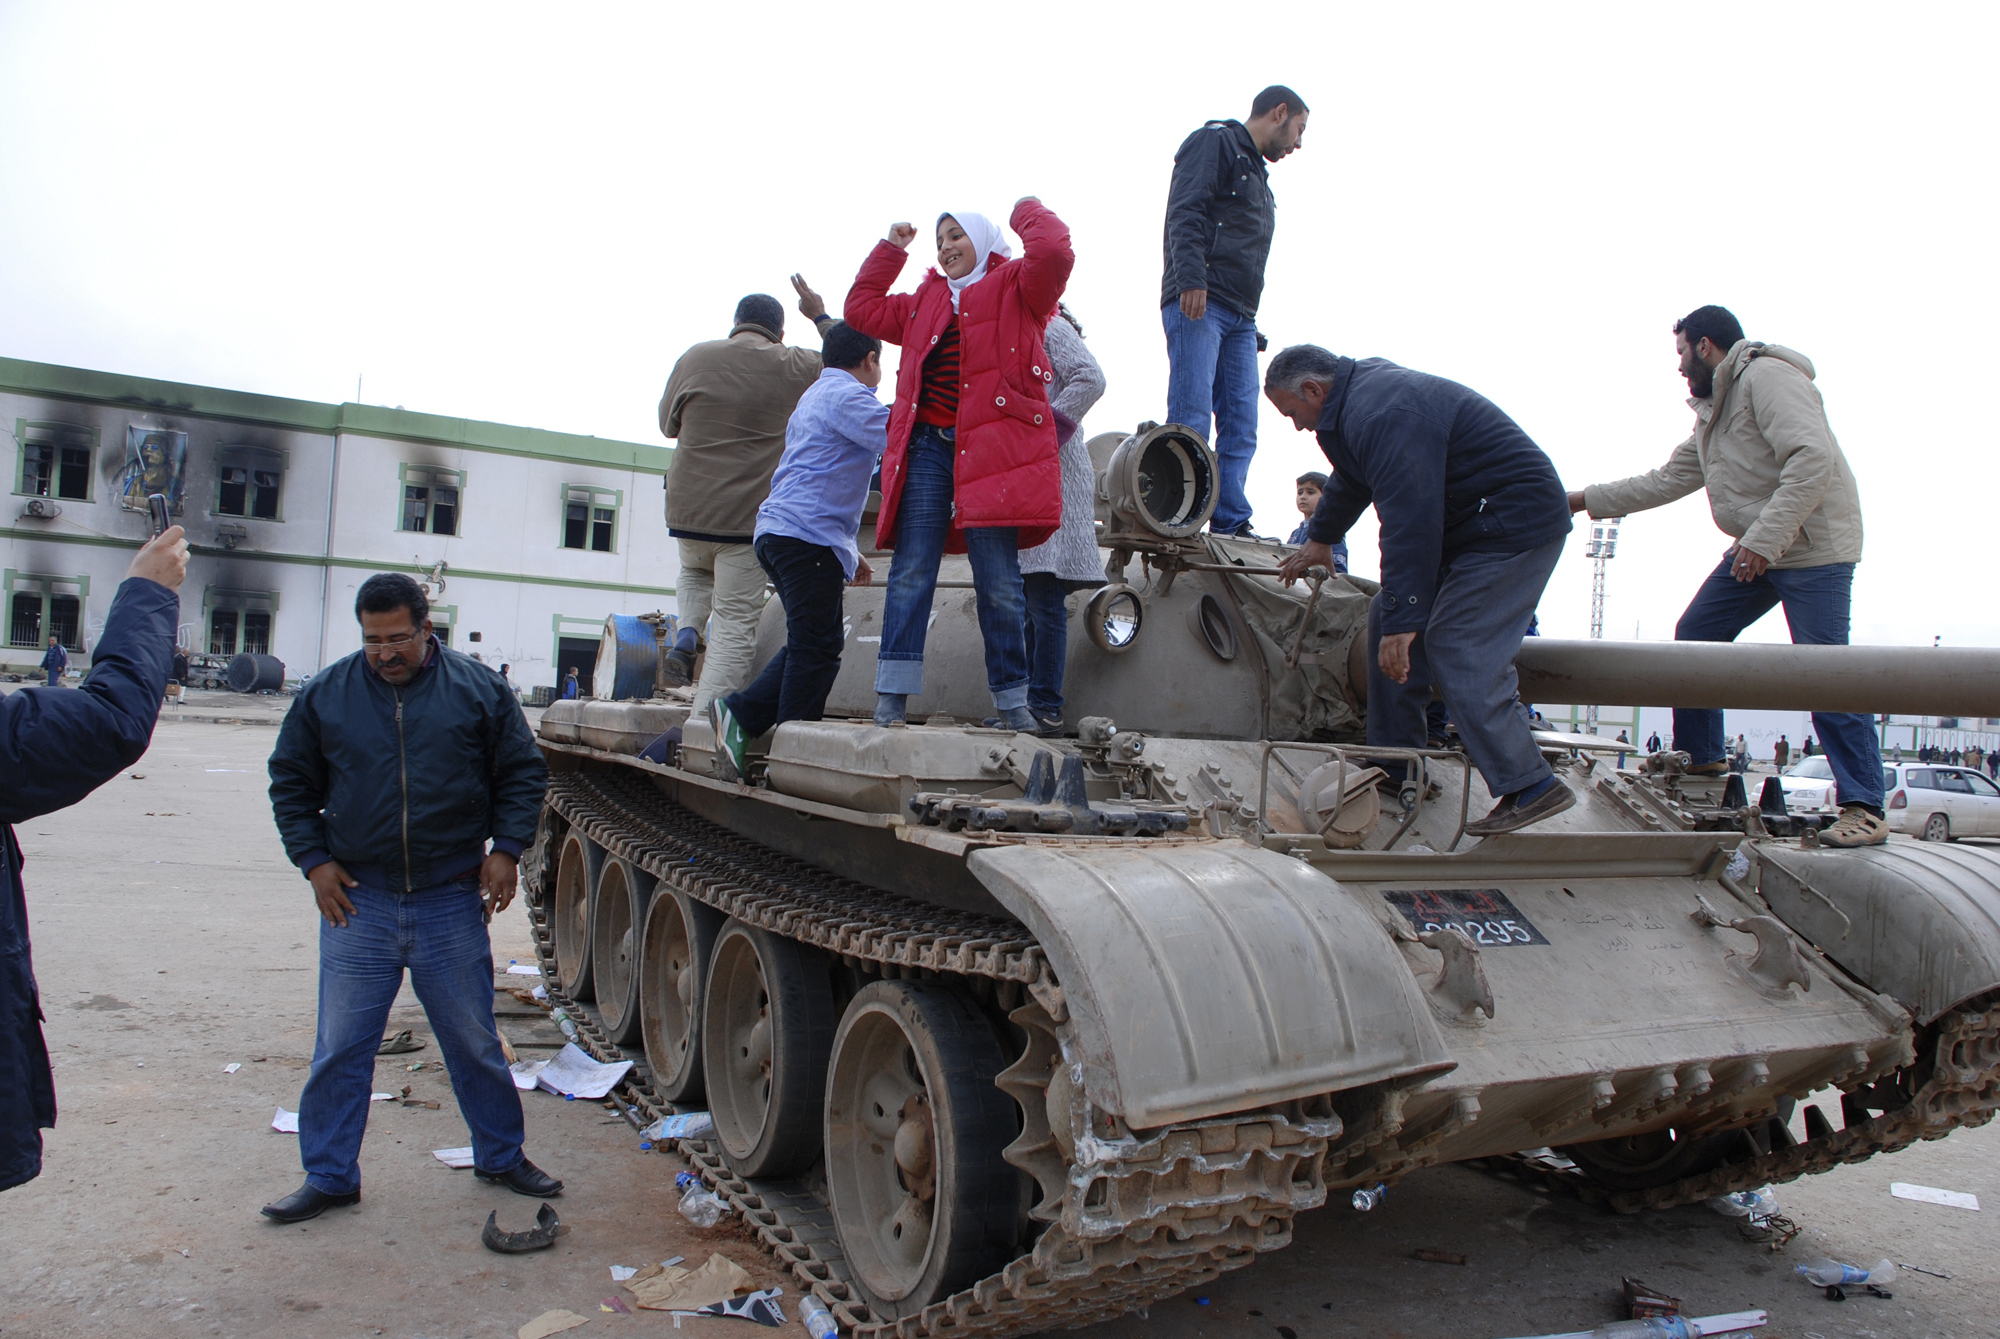 FILE - In this Feb. 21, 2011 file photo, people stand on a tank inside a security forces compound in the eastern Libyan city of Benghazi. Libyans are celebrating the eighth anniversary of their 2011 uprising that led to the overthrow and killing of longtime dictator Moammar Gadhafi, although the intensity of the festivities is underlining the split between the country's east and west. Hundreds of people reveled Sunday in the western cities of Tripoli, Misrata and Zawiya, where bands played and flags lined the streets. (AP Photo/Alagur, File)